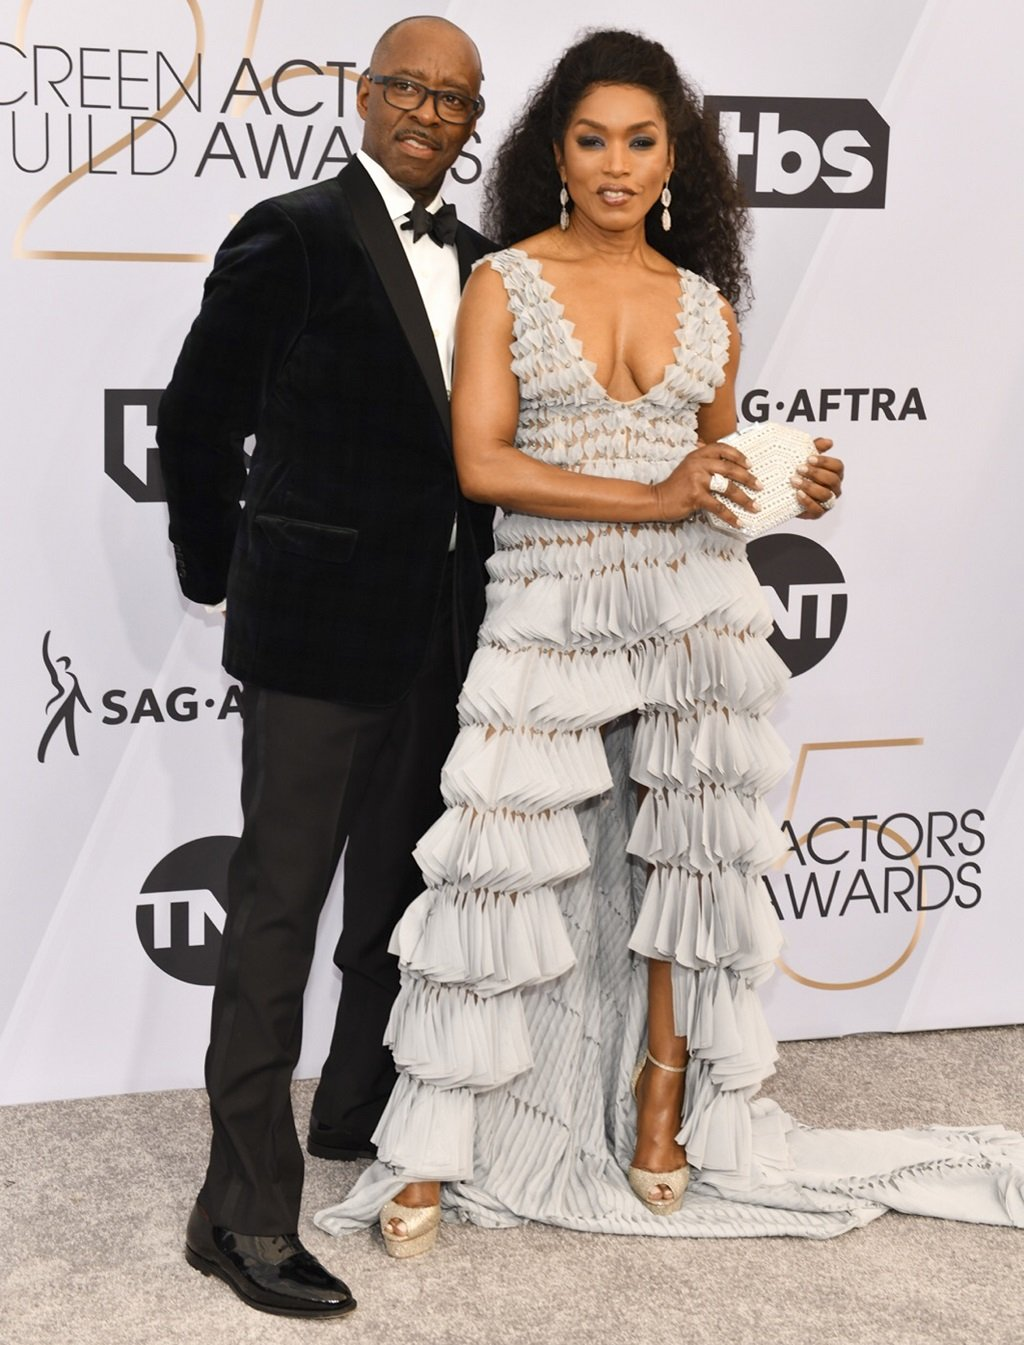 Angela Bassett and husband Courtney B. Vance at the Shrine Auditorium and Expo Hall in Los Angeles for the SAG Awards on January 27, 2019 | Source: Getty Images